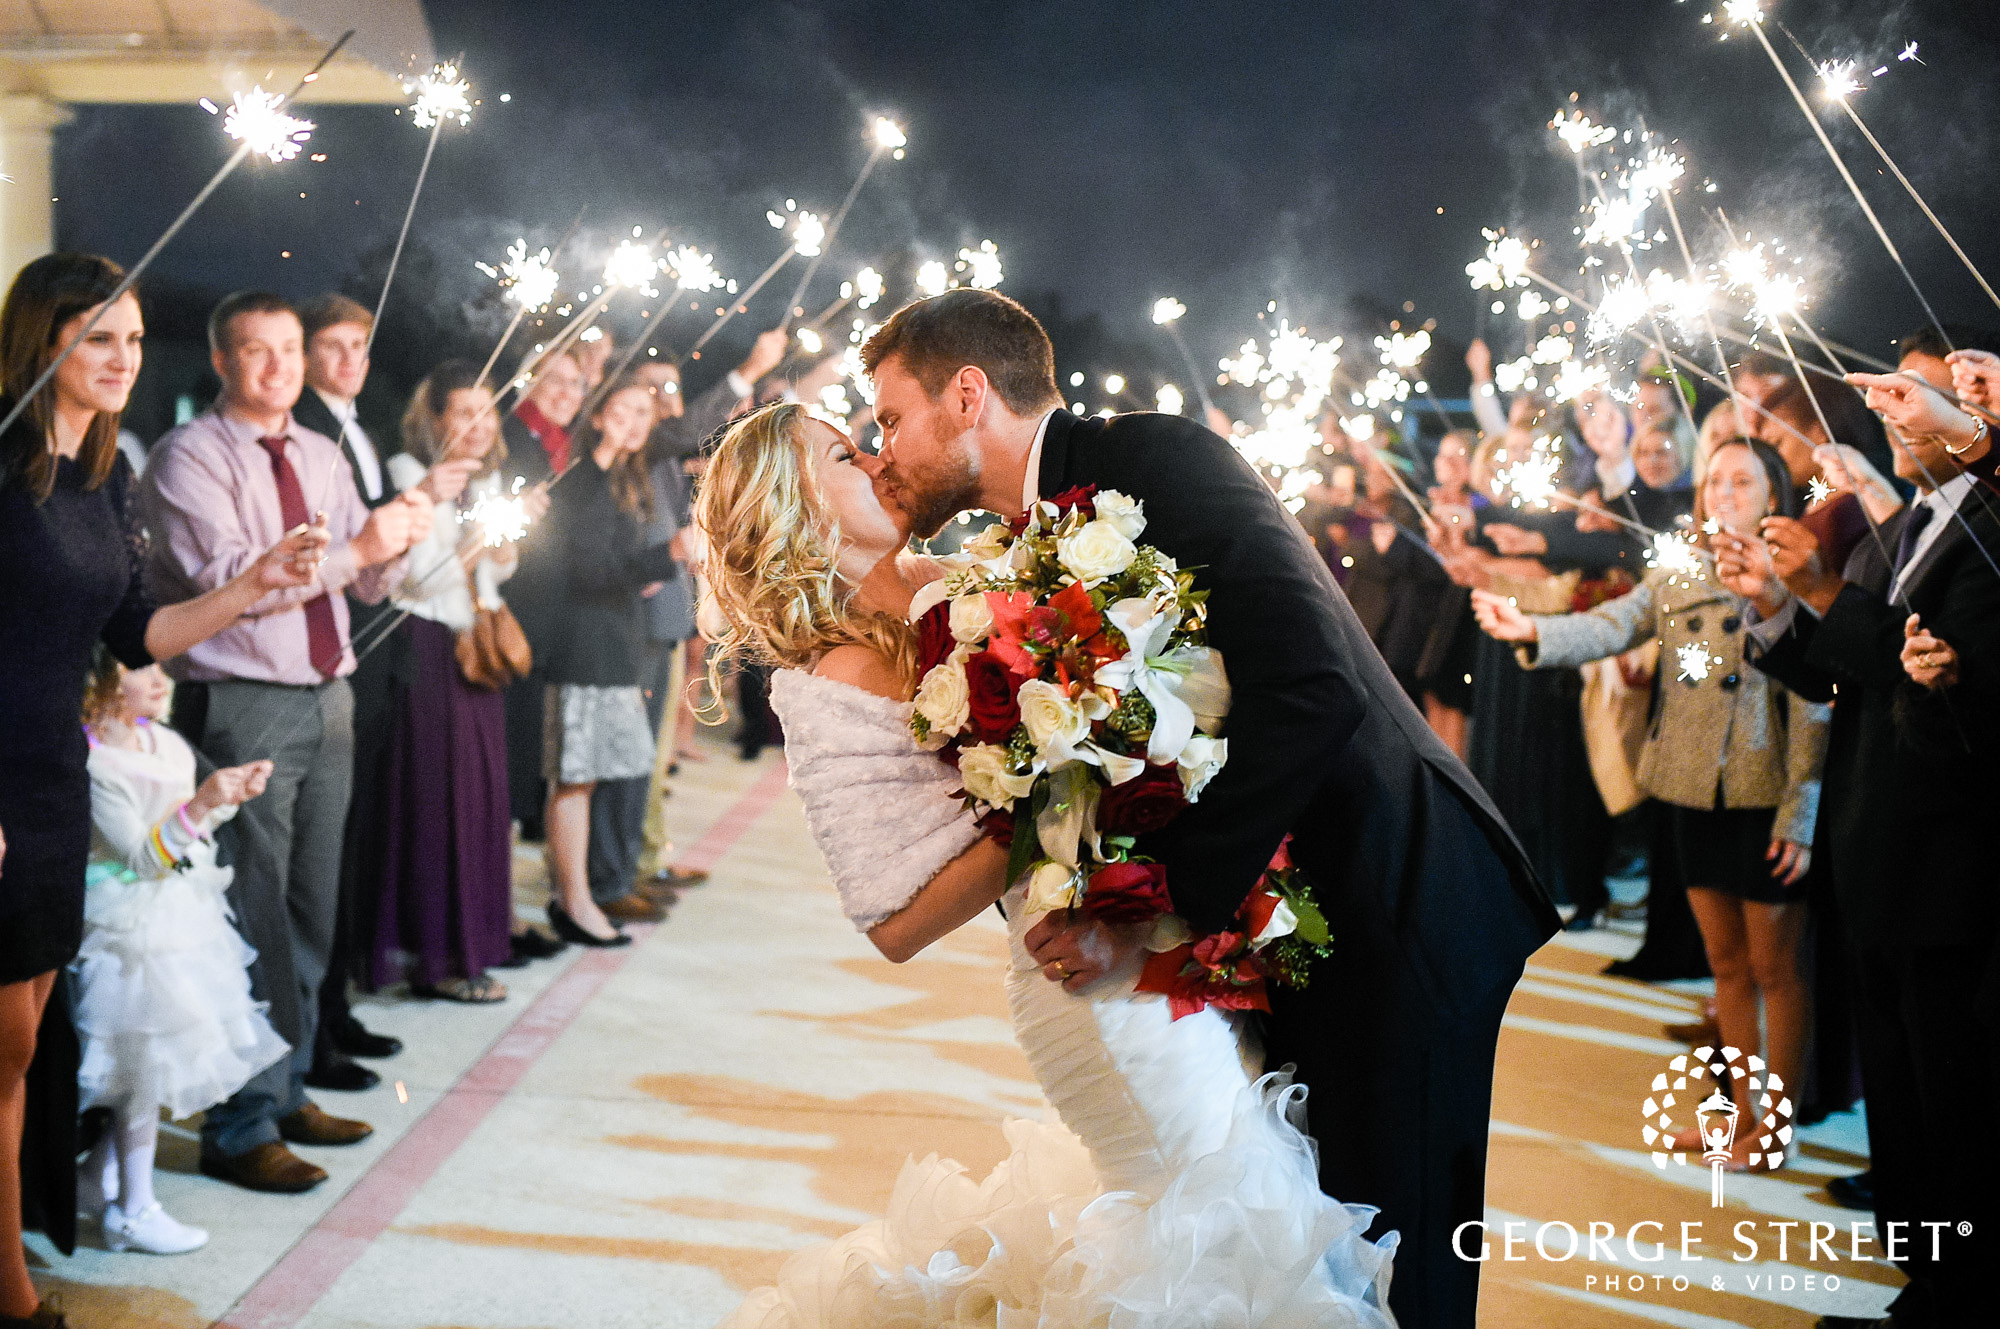 Dream And Search For Grand Exit Ideas A Memorable Au Revoir Bubbles Sparklers Ribbon Wands Or Vintage Car Are Just Some An Epic